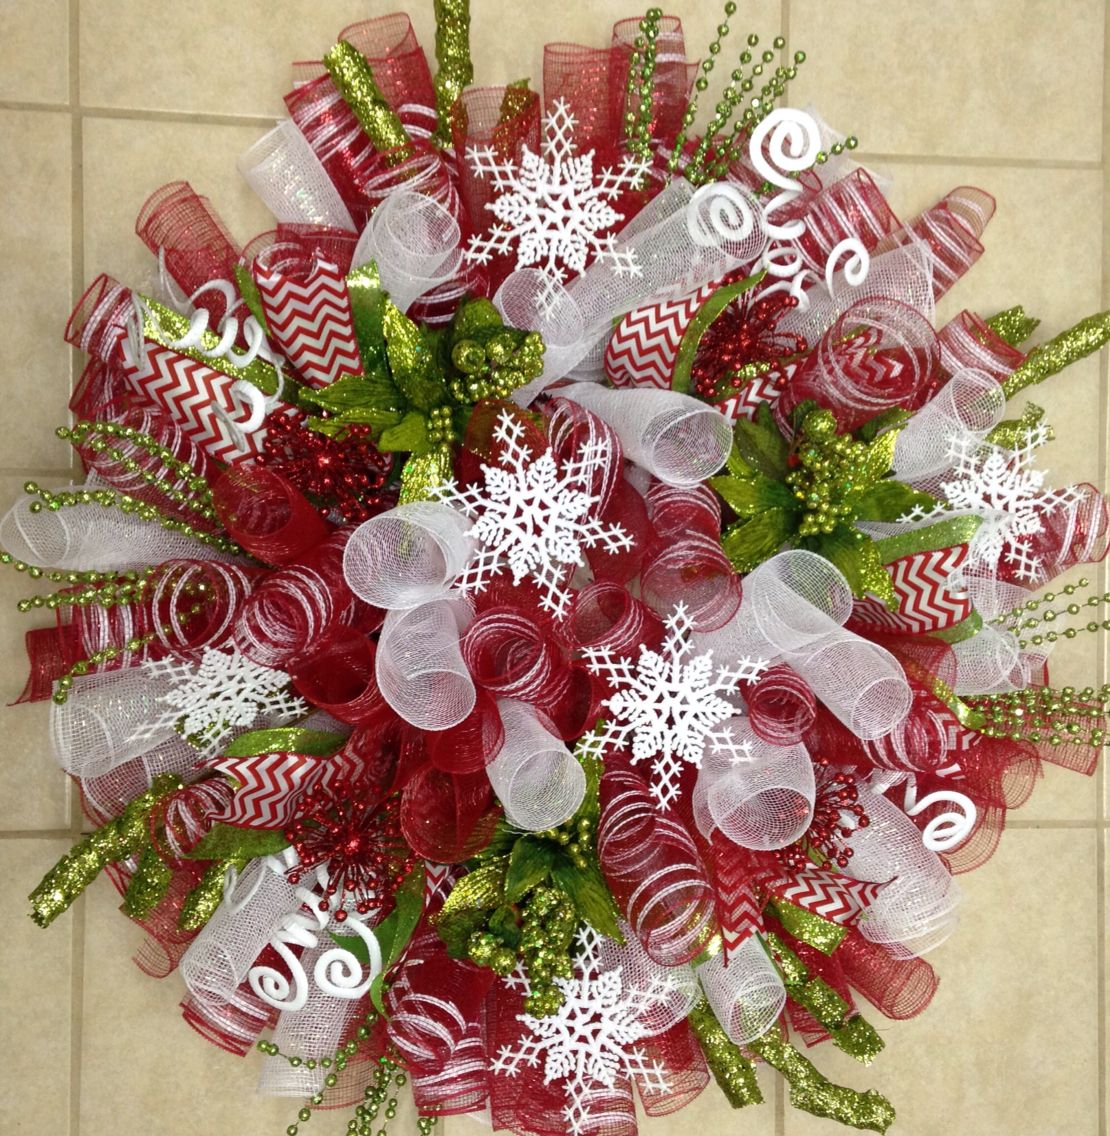 Diy Wreath Supplies Christmas Deco Mesh Wreath Wreaths Christmas Wreaths